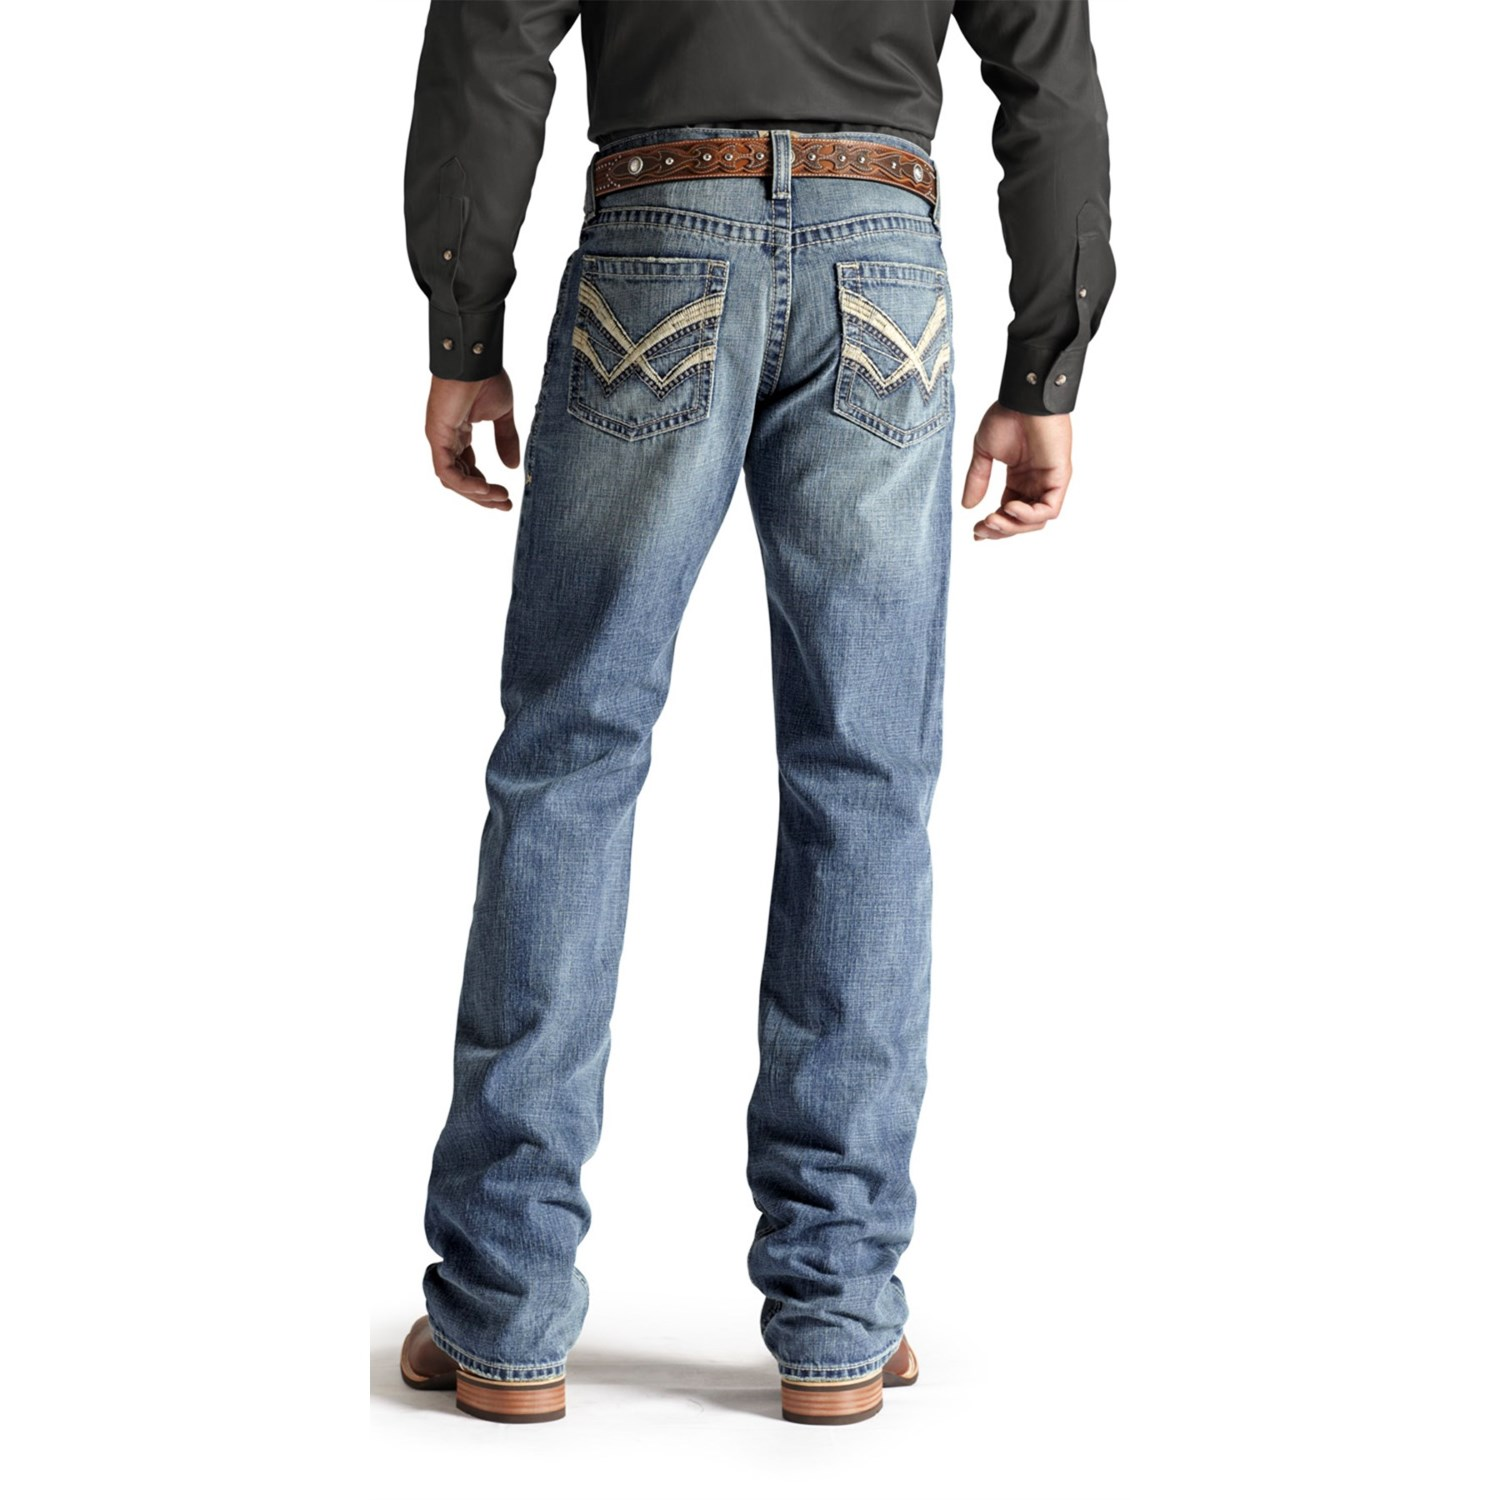 Ariat M4 Checkmate Denim Jeans (For Men) 7709A - Save 31% - photo#9